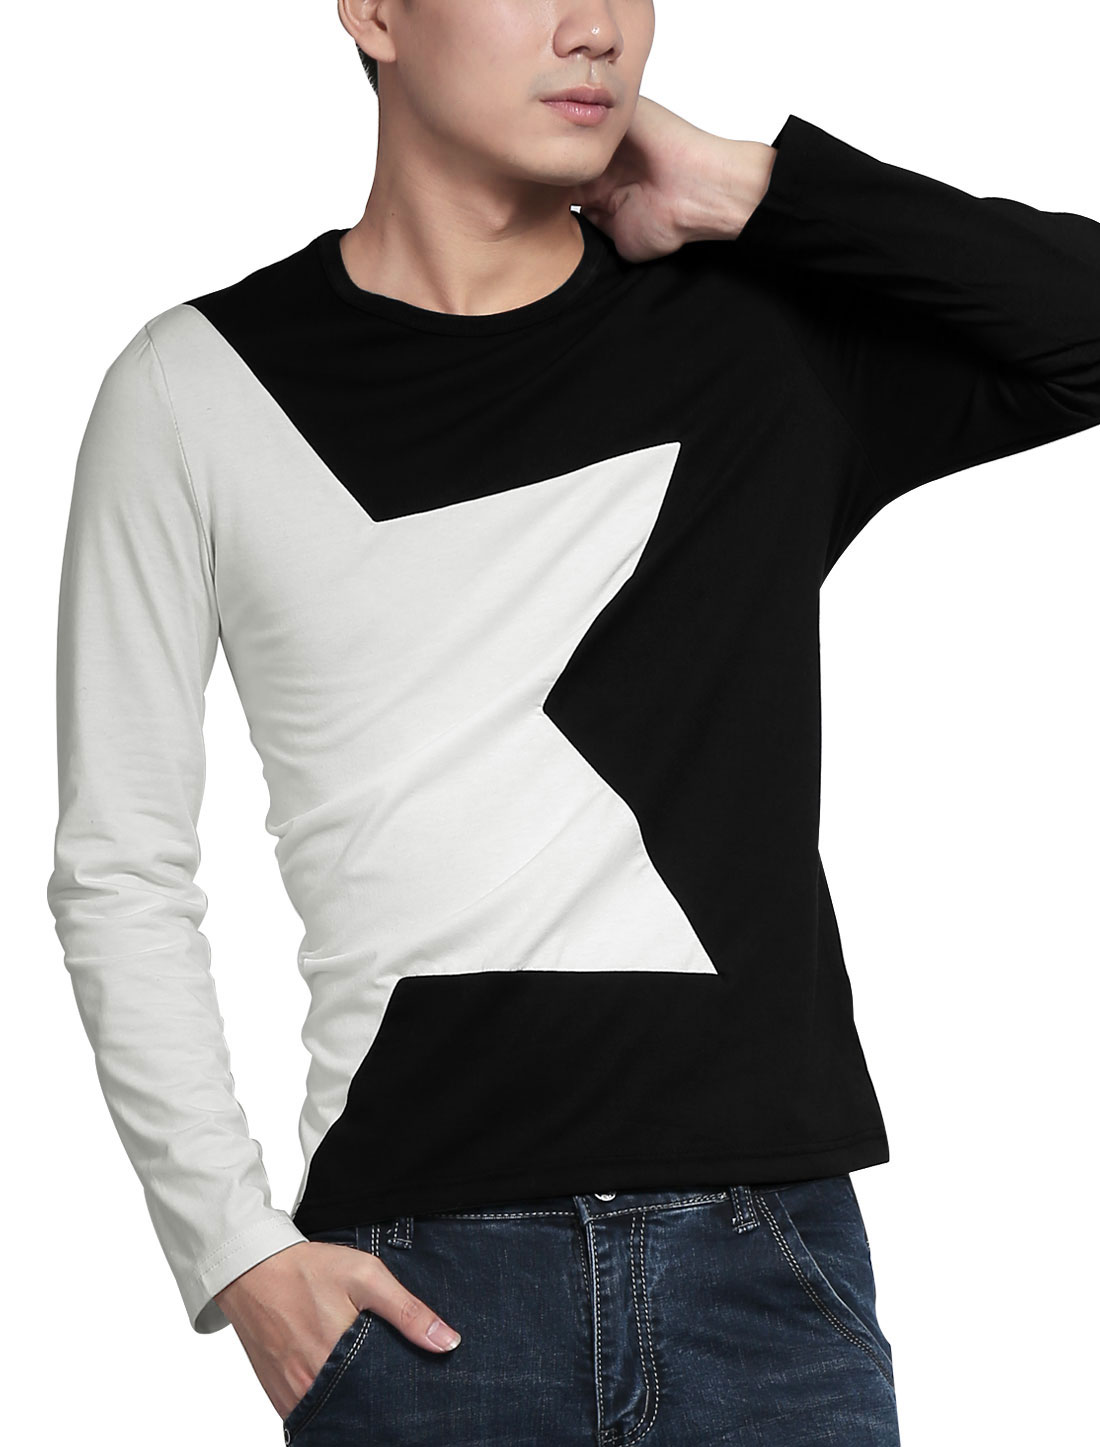 Mens Fashion Black White Star Pattern Stretch Autumn Primer Shirt M